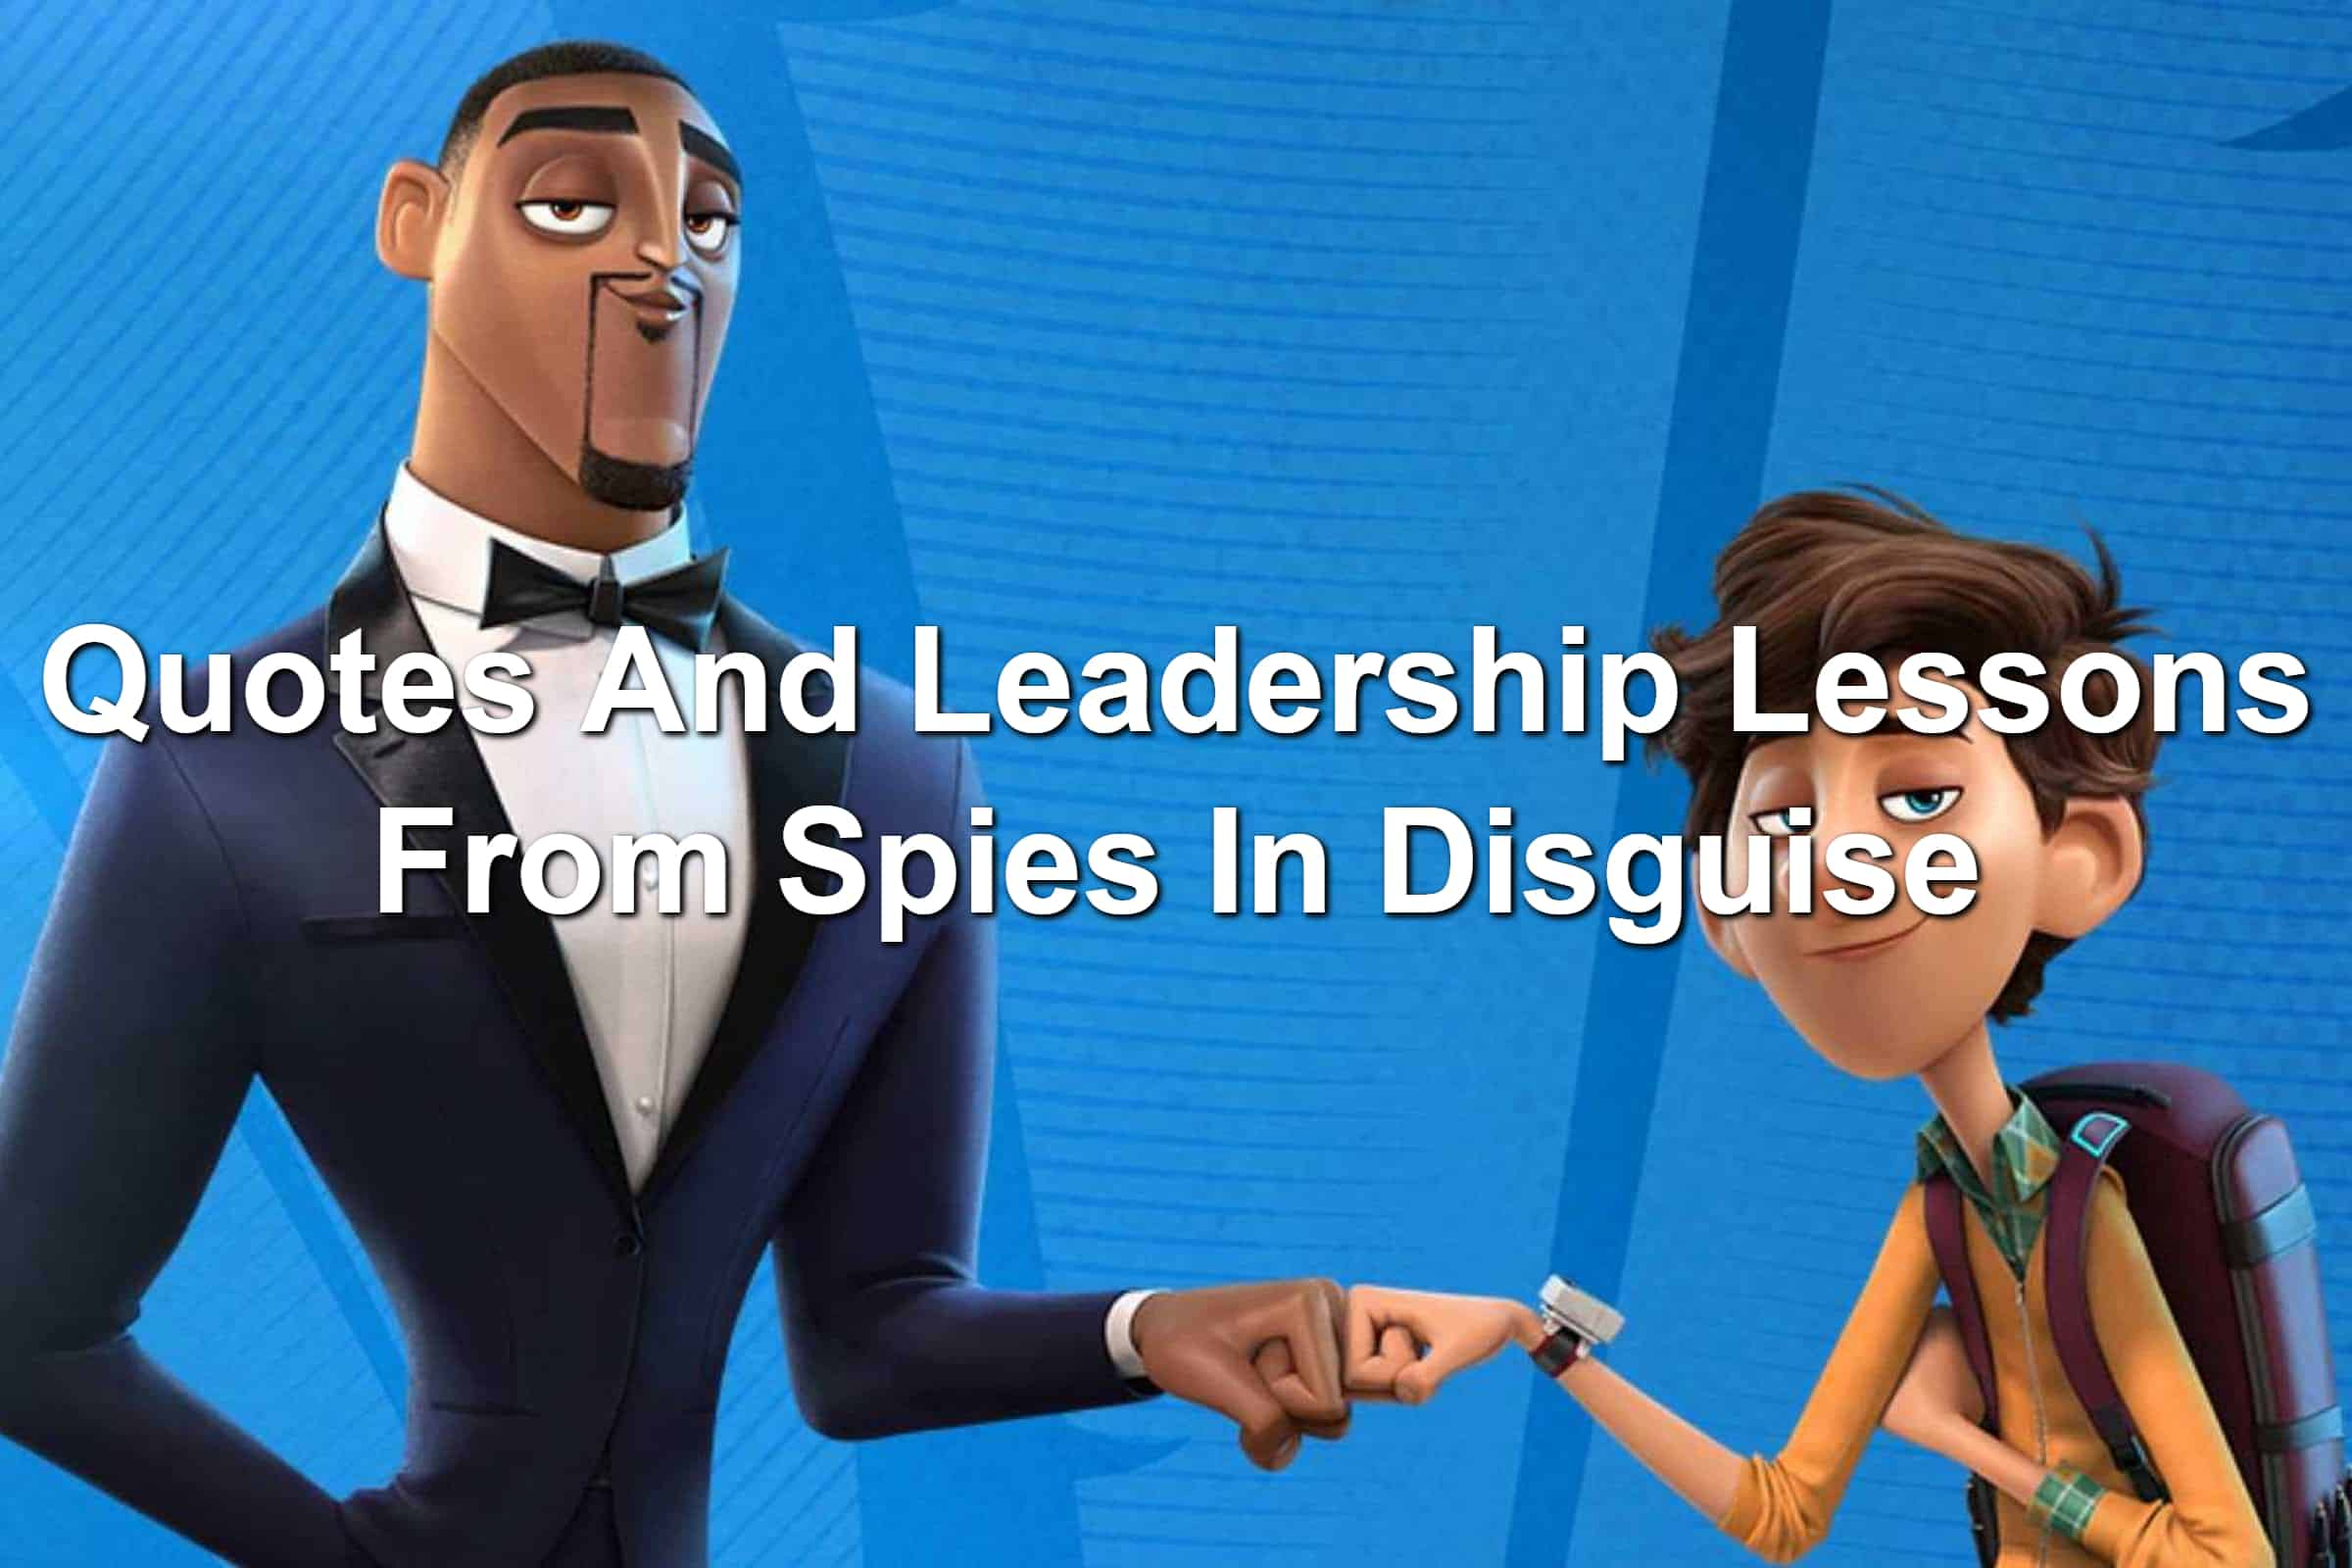 Will Smith and Tom Holland's characters in Spies In Disguise giving one another fist bumps